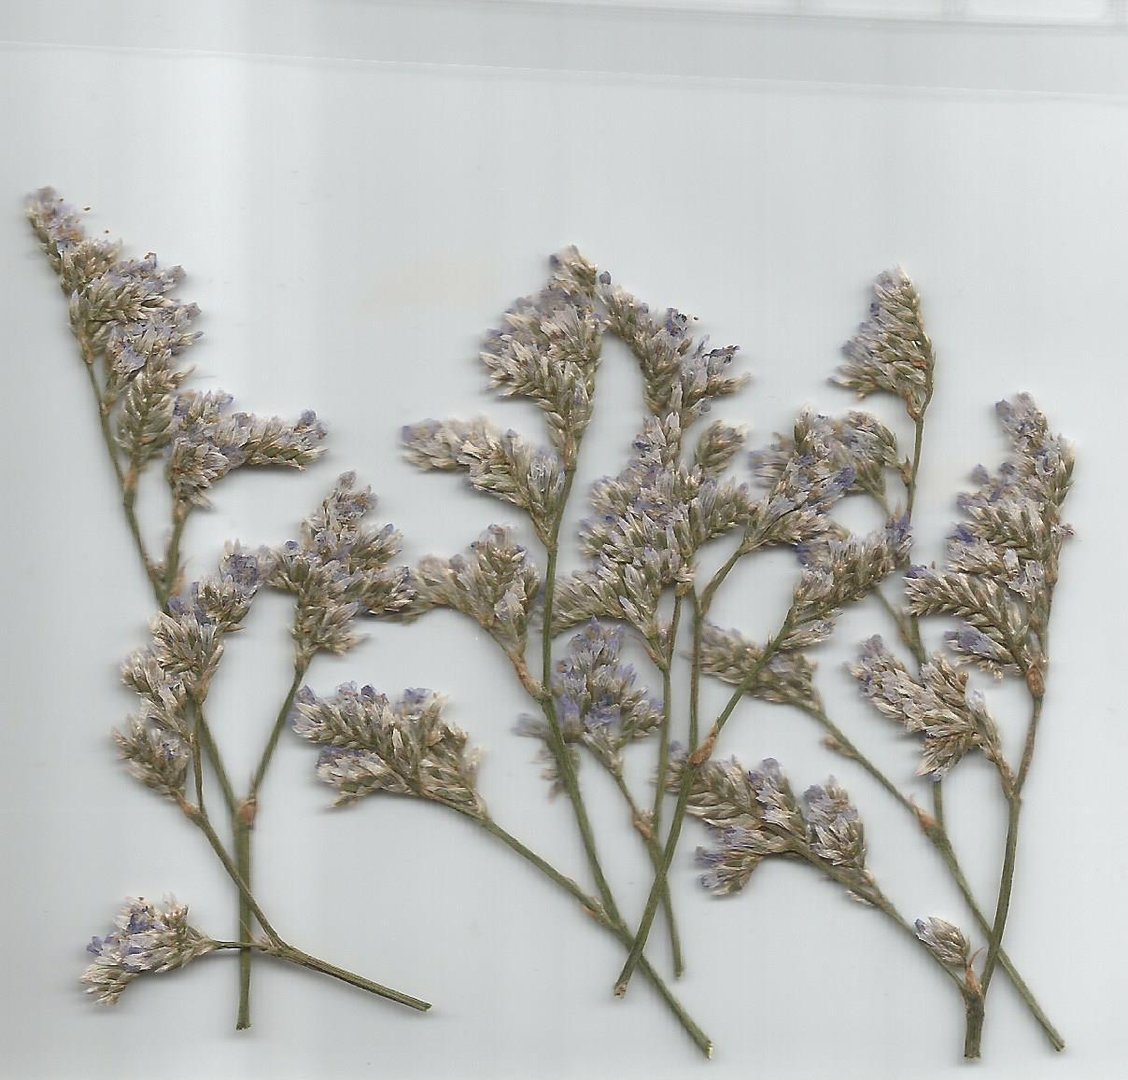 Pressed Dried Flowers Sea Lavender Pack Of 7 Dried